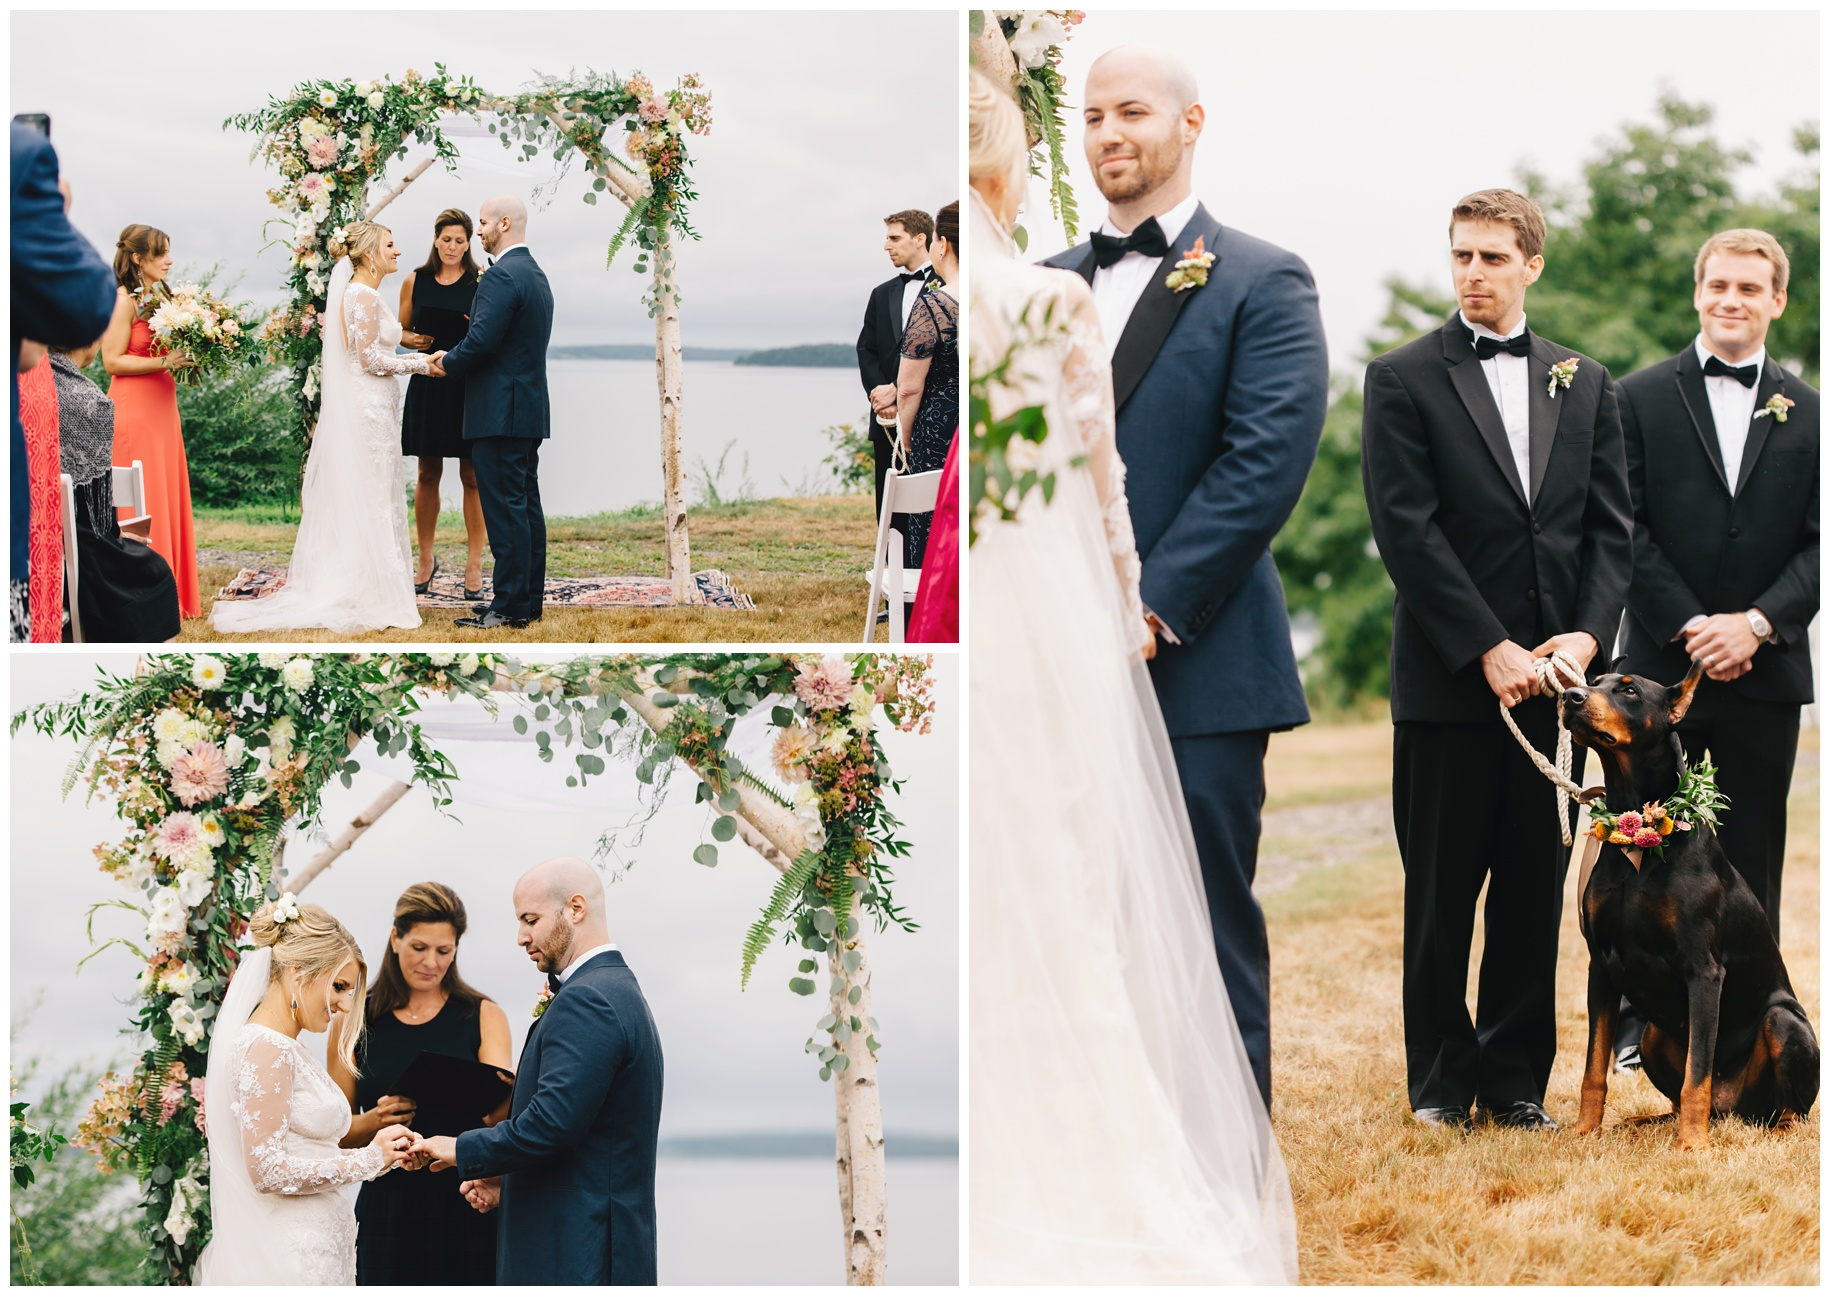 Maine_Wedding_photographer_FrenchsPoint_Stockton_Springs_coast_seaside-013